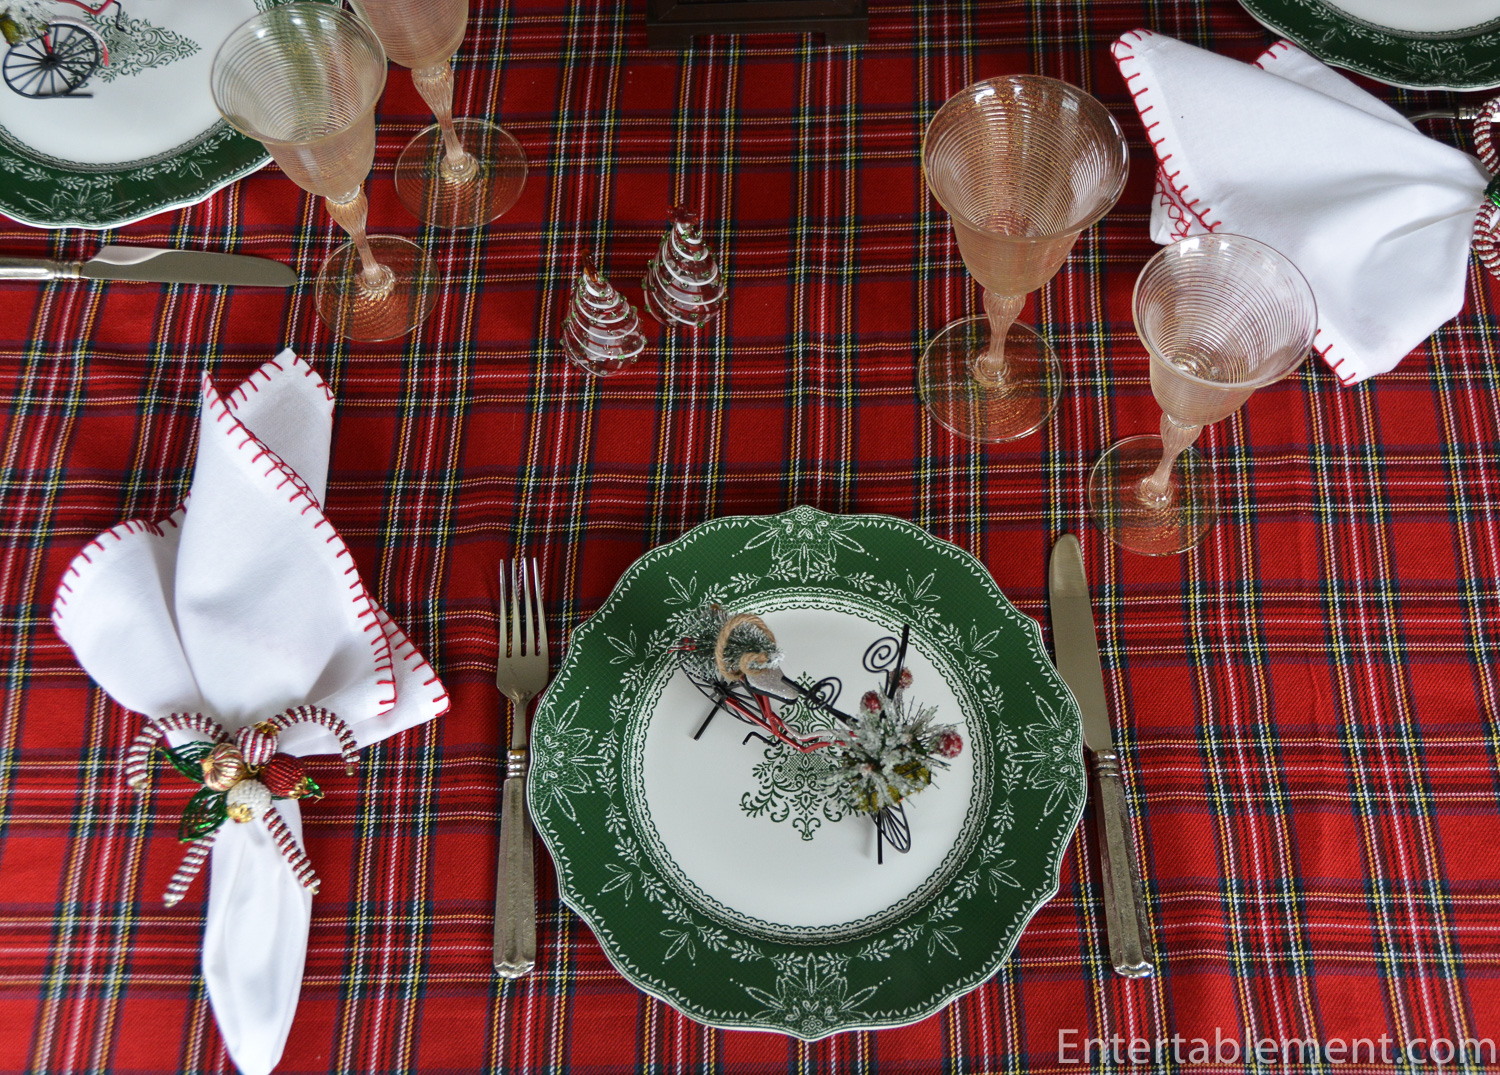 The dinner plate has a pretty scalloped edge and a scrolled triangular pattern in the white centre. Macy\u0027s had full dinnerware sets on offer last year at ... & Green Ball by 222 Fifth \u2013 Entertablement